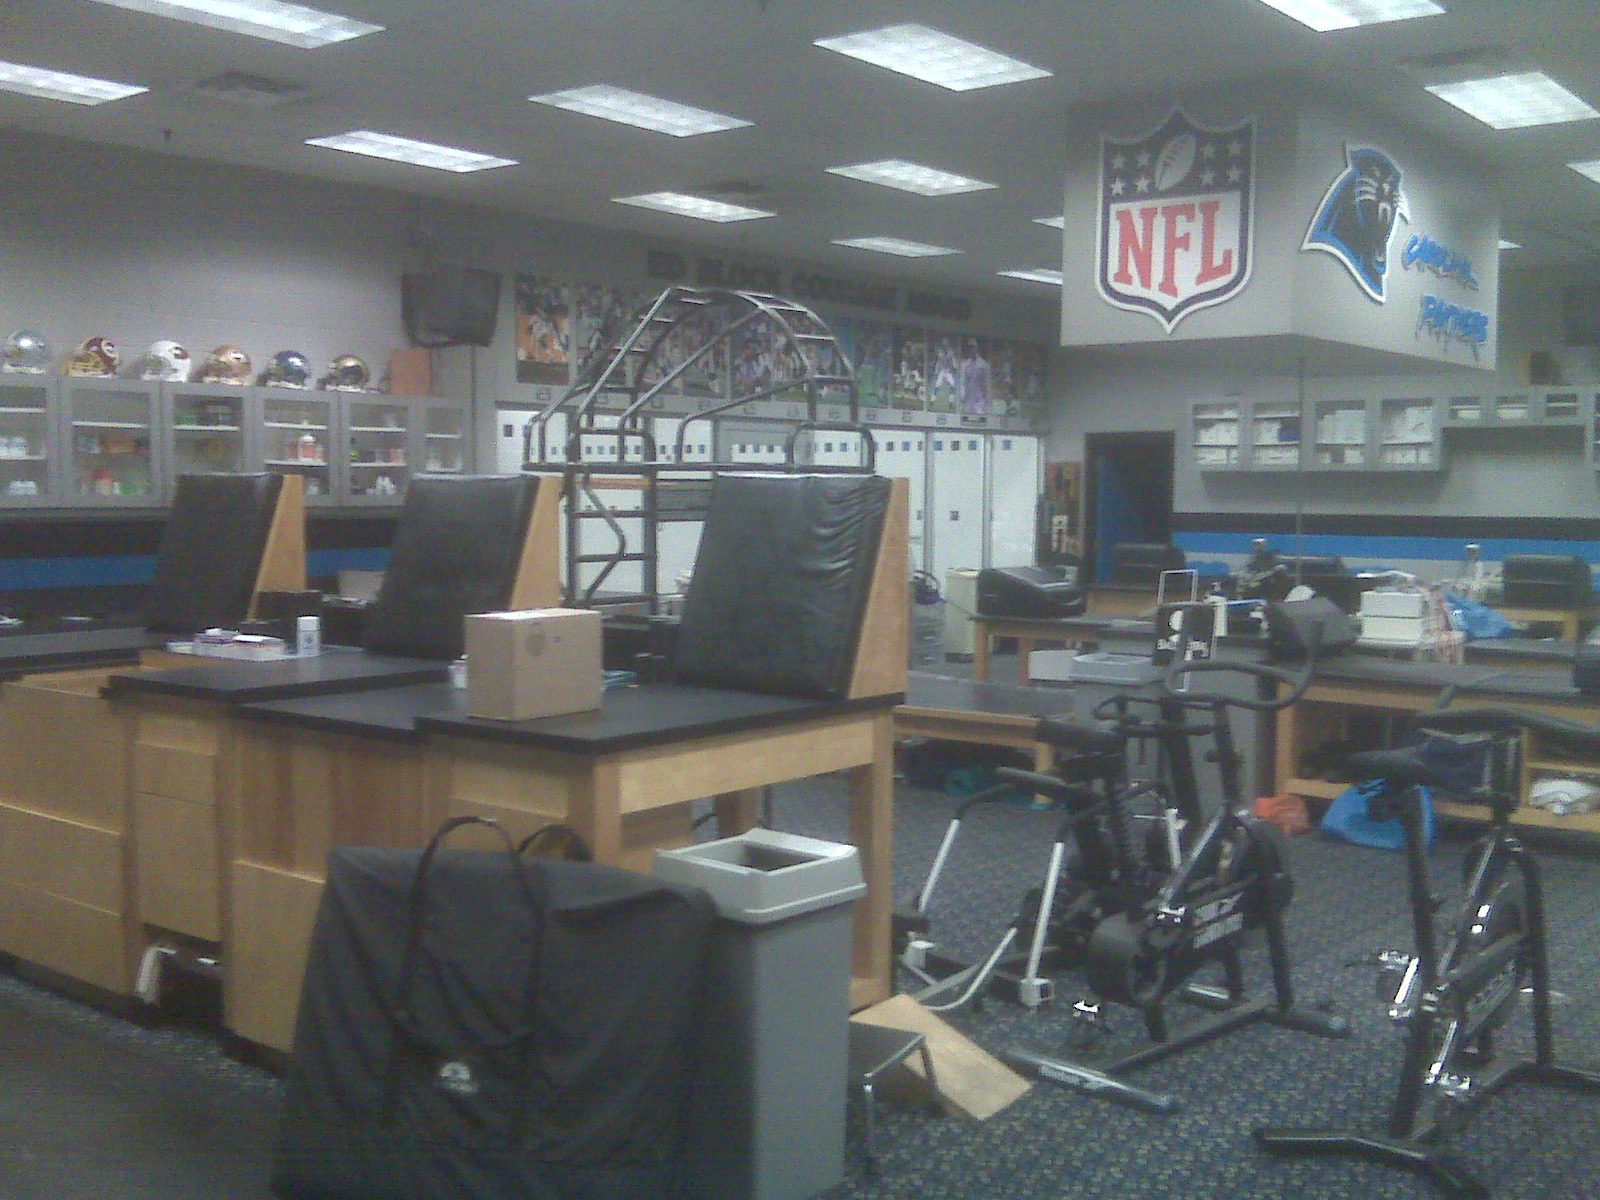 The Panthers Training Room